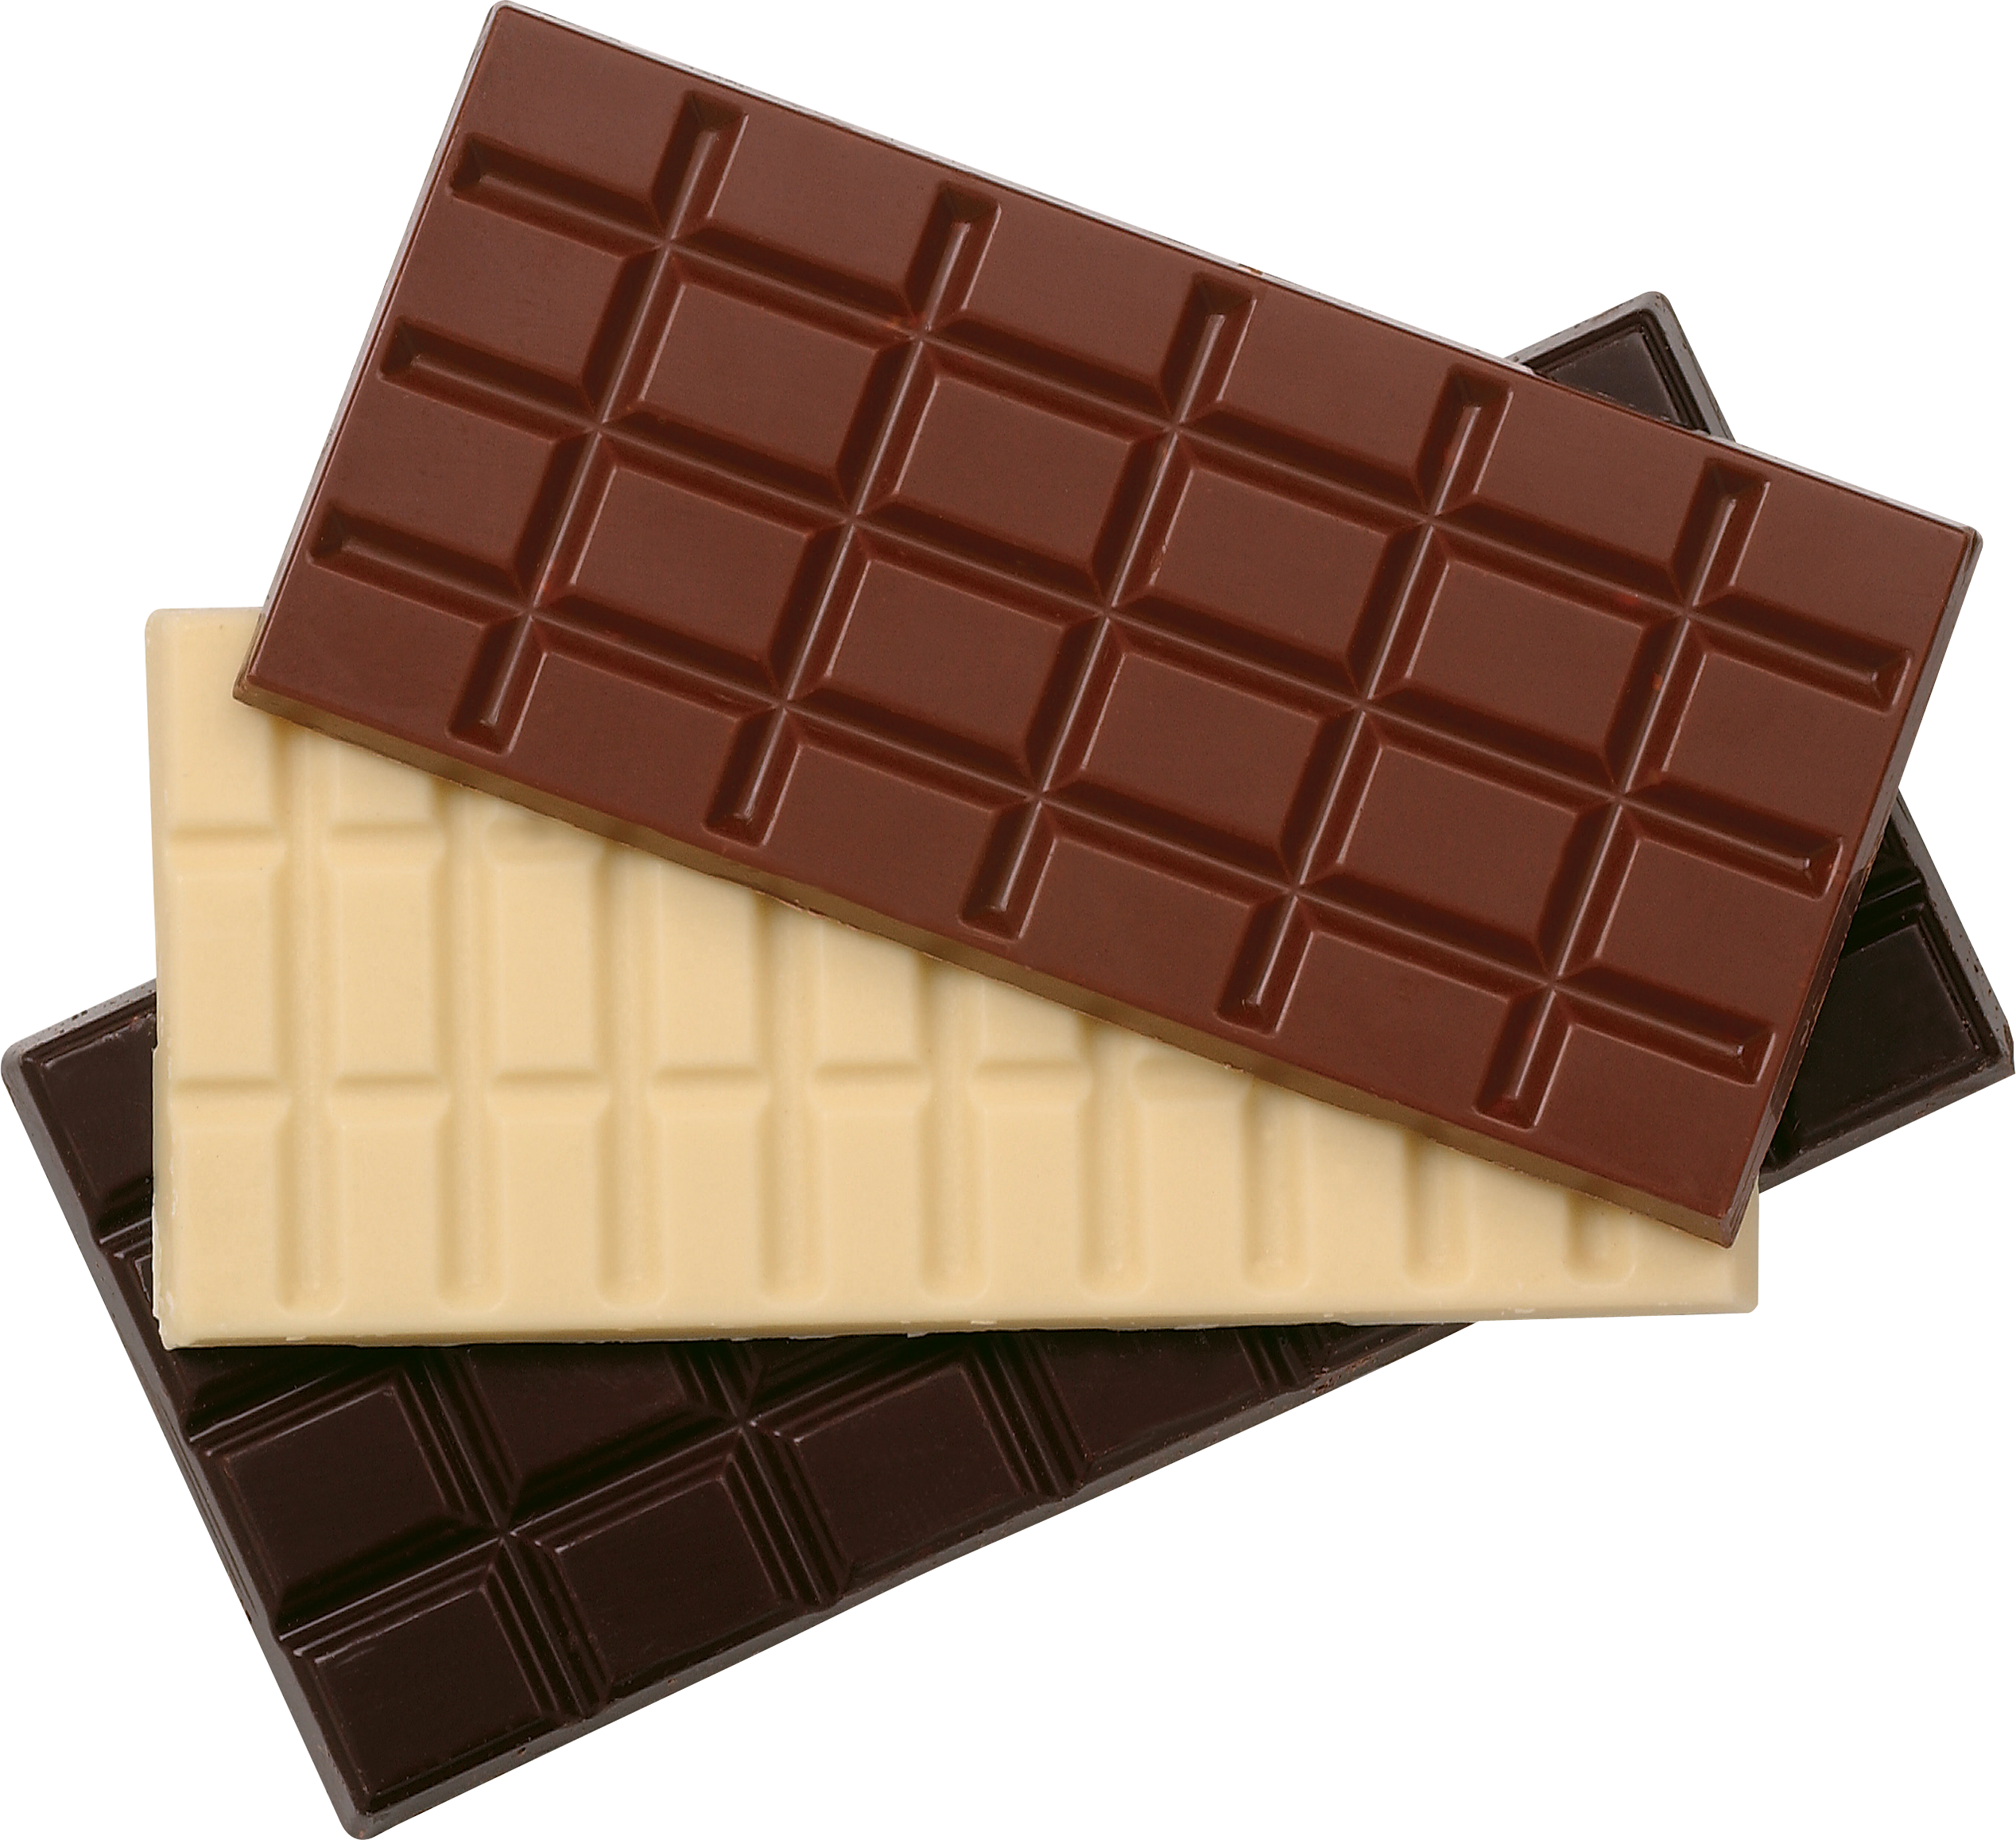 Png pinterest chocolatepng . Hungry clipart chocolate